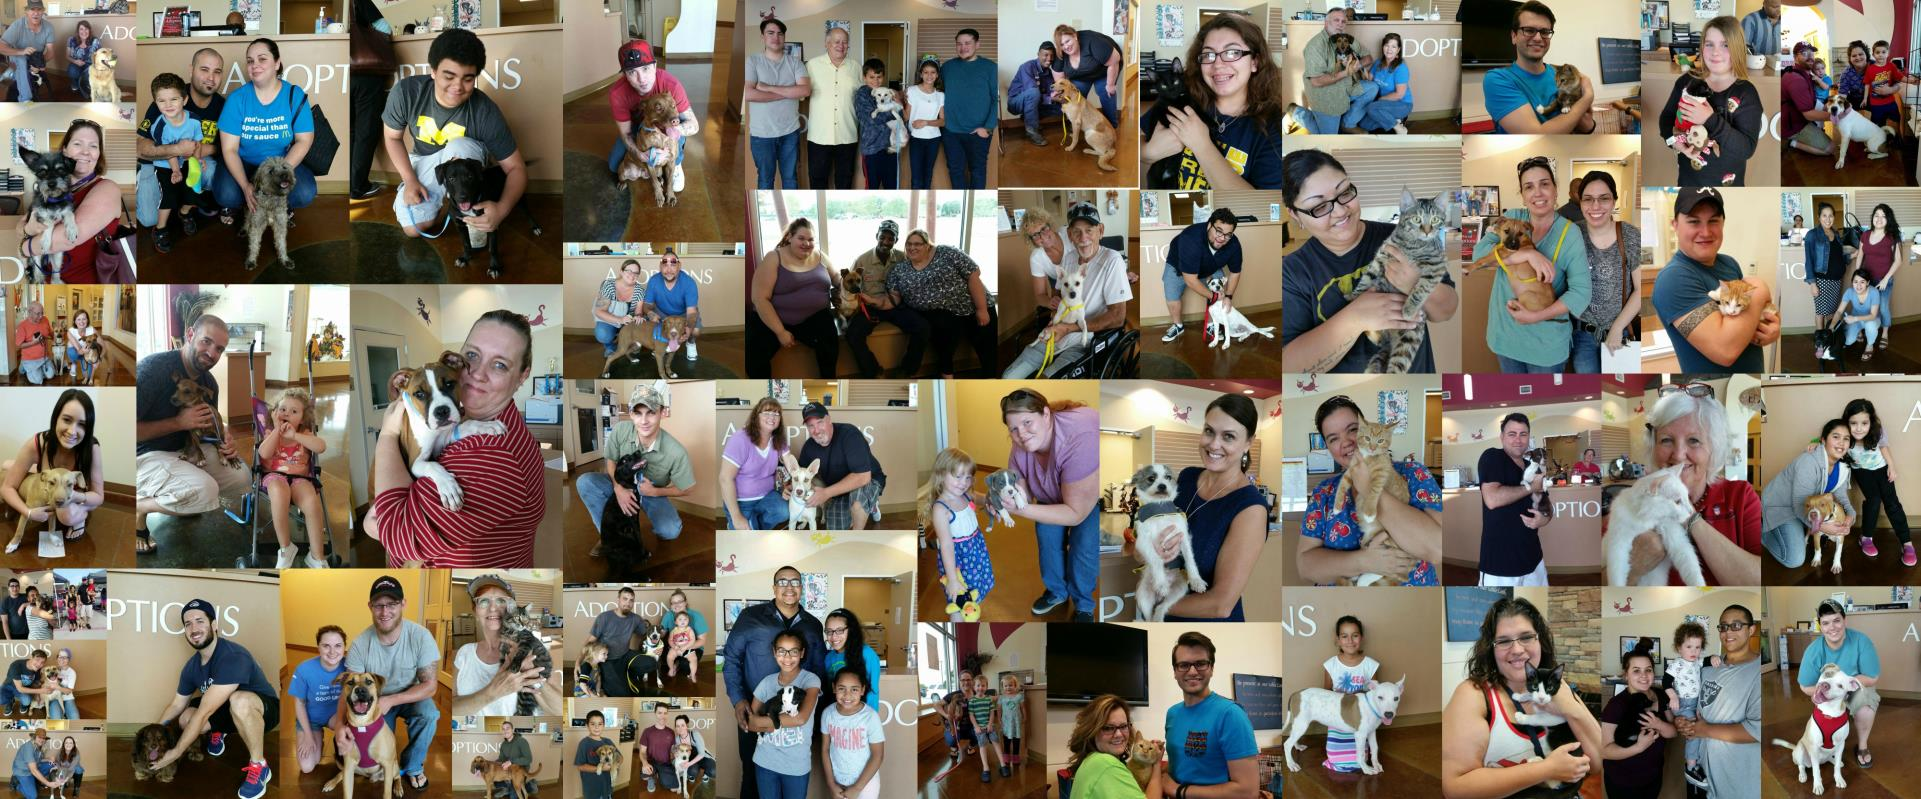 Collage of pet adoptions